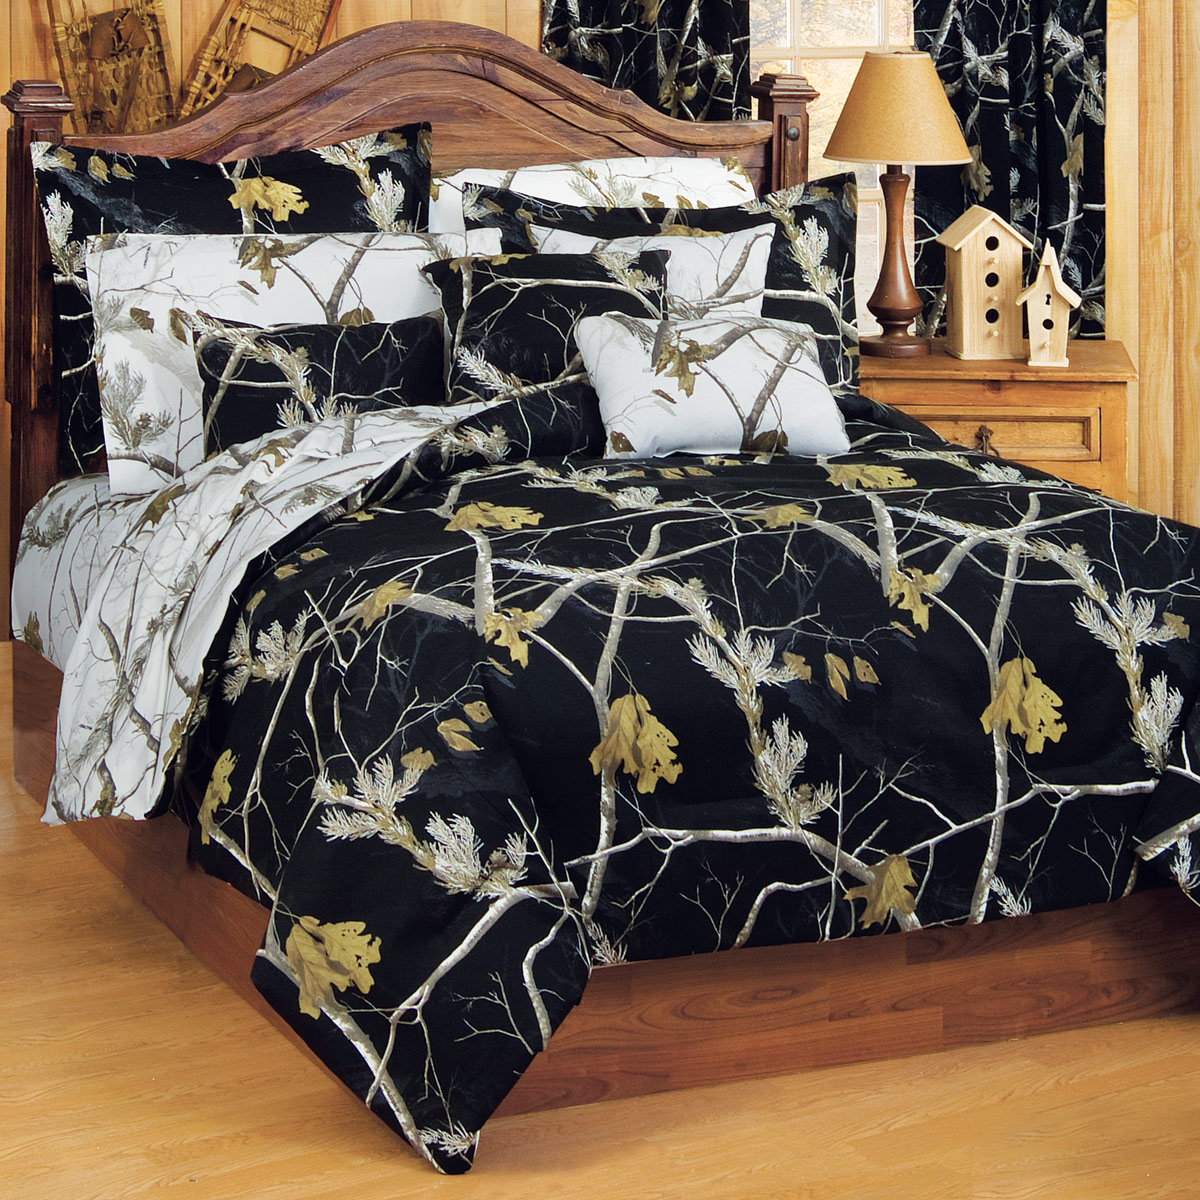 Why Camouflage Bedding